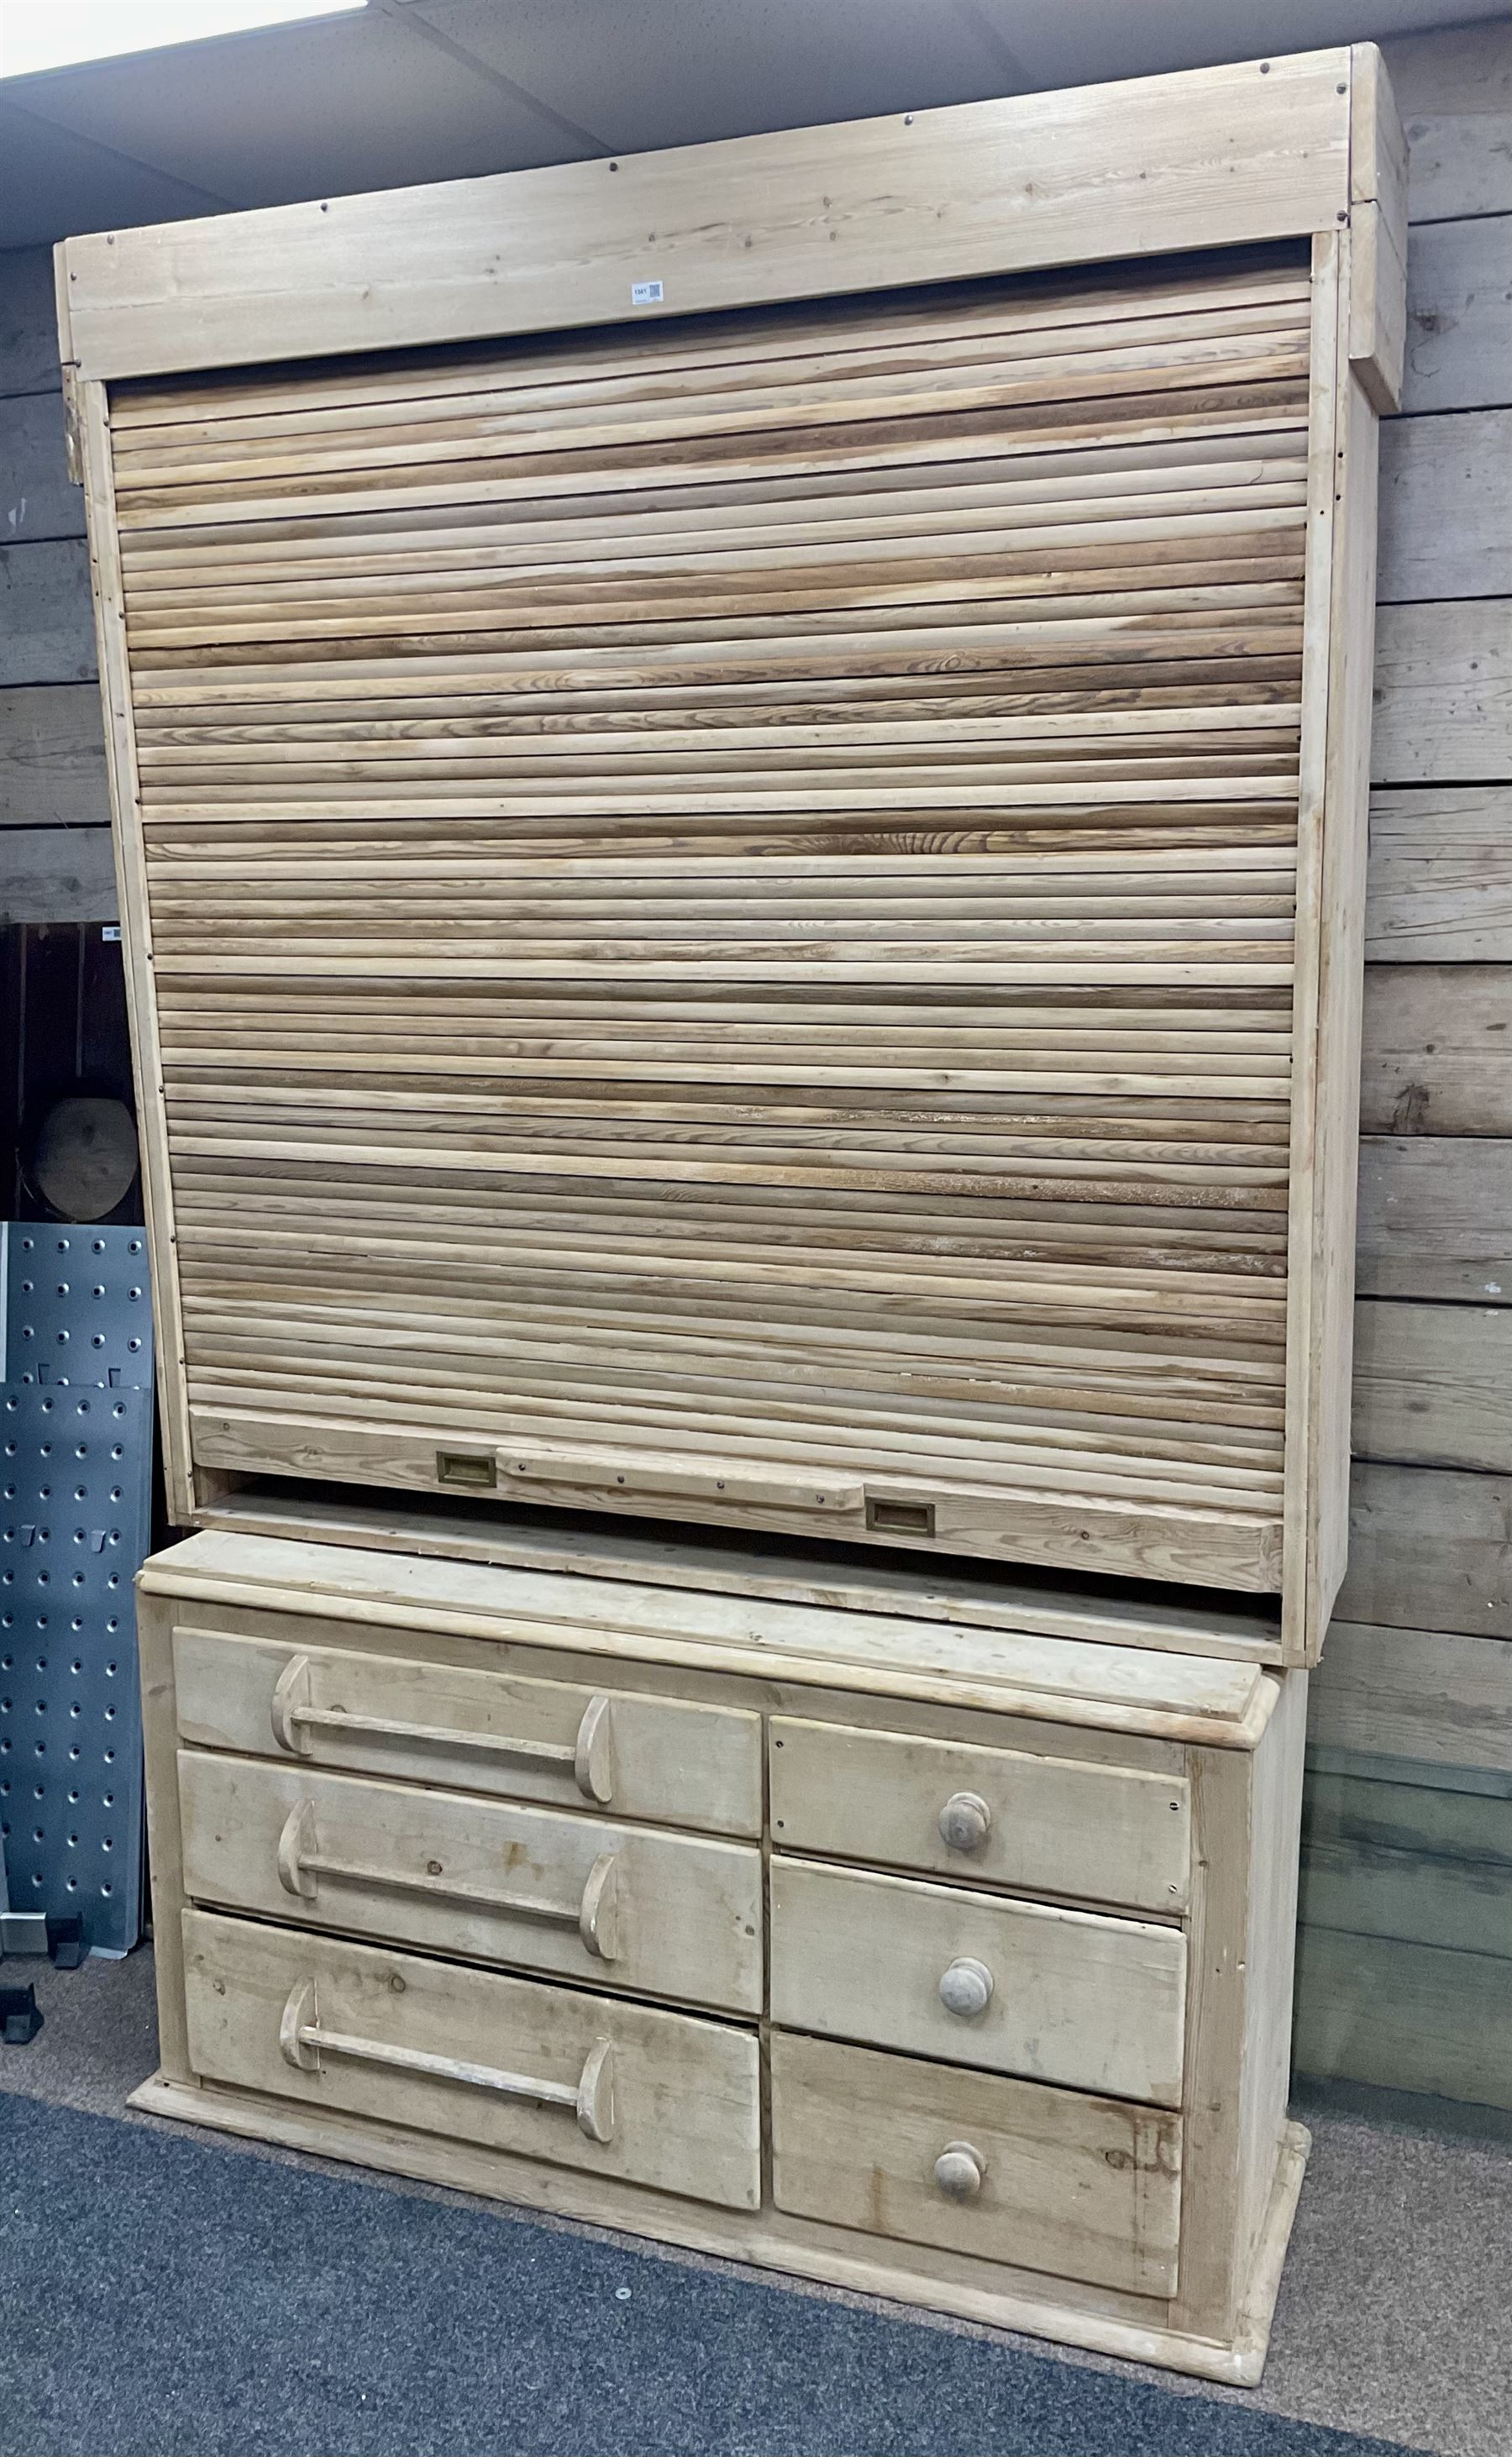 Large 19th century pine dresser with tambour roll top compartment enclosing four shelves above three